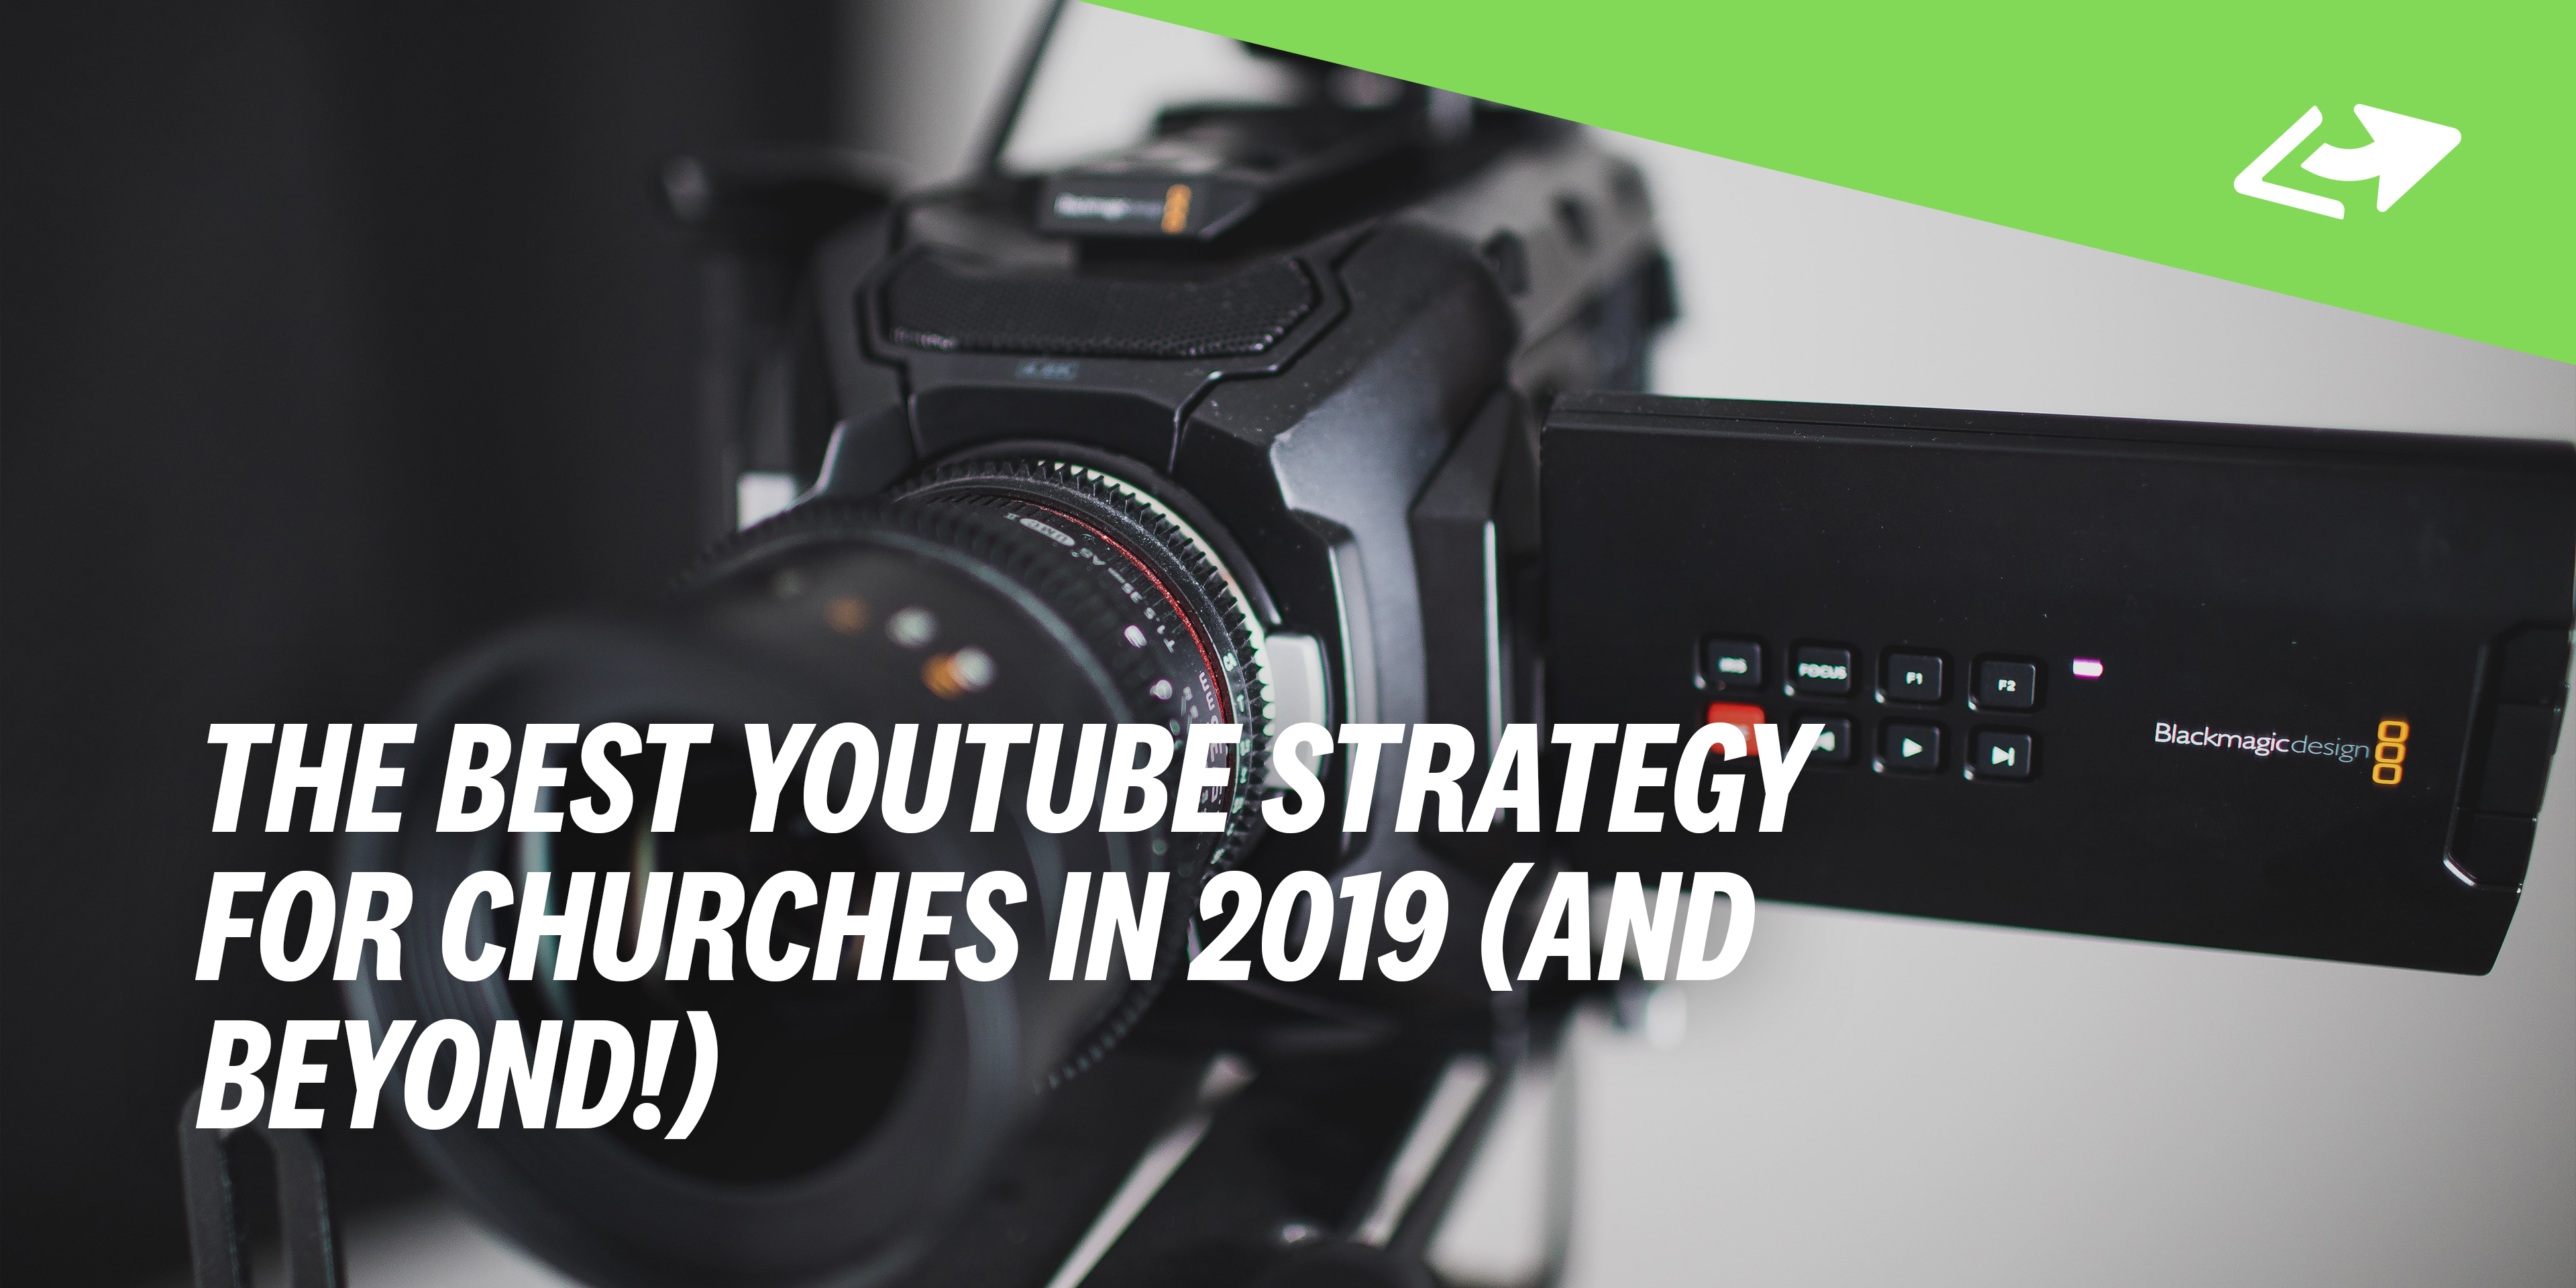 The BEST YouTube Strategies for Churches in 2019 (And Beyond